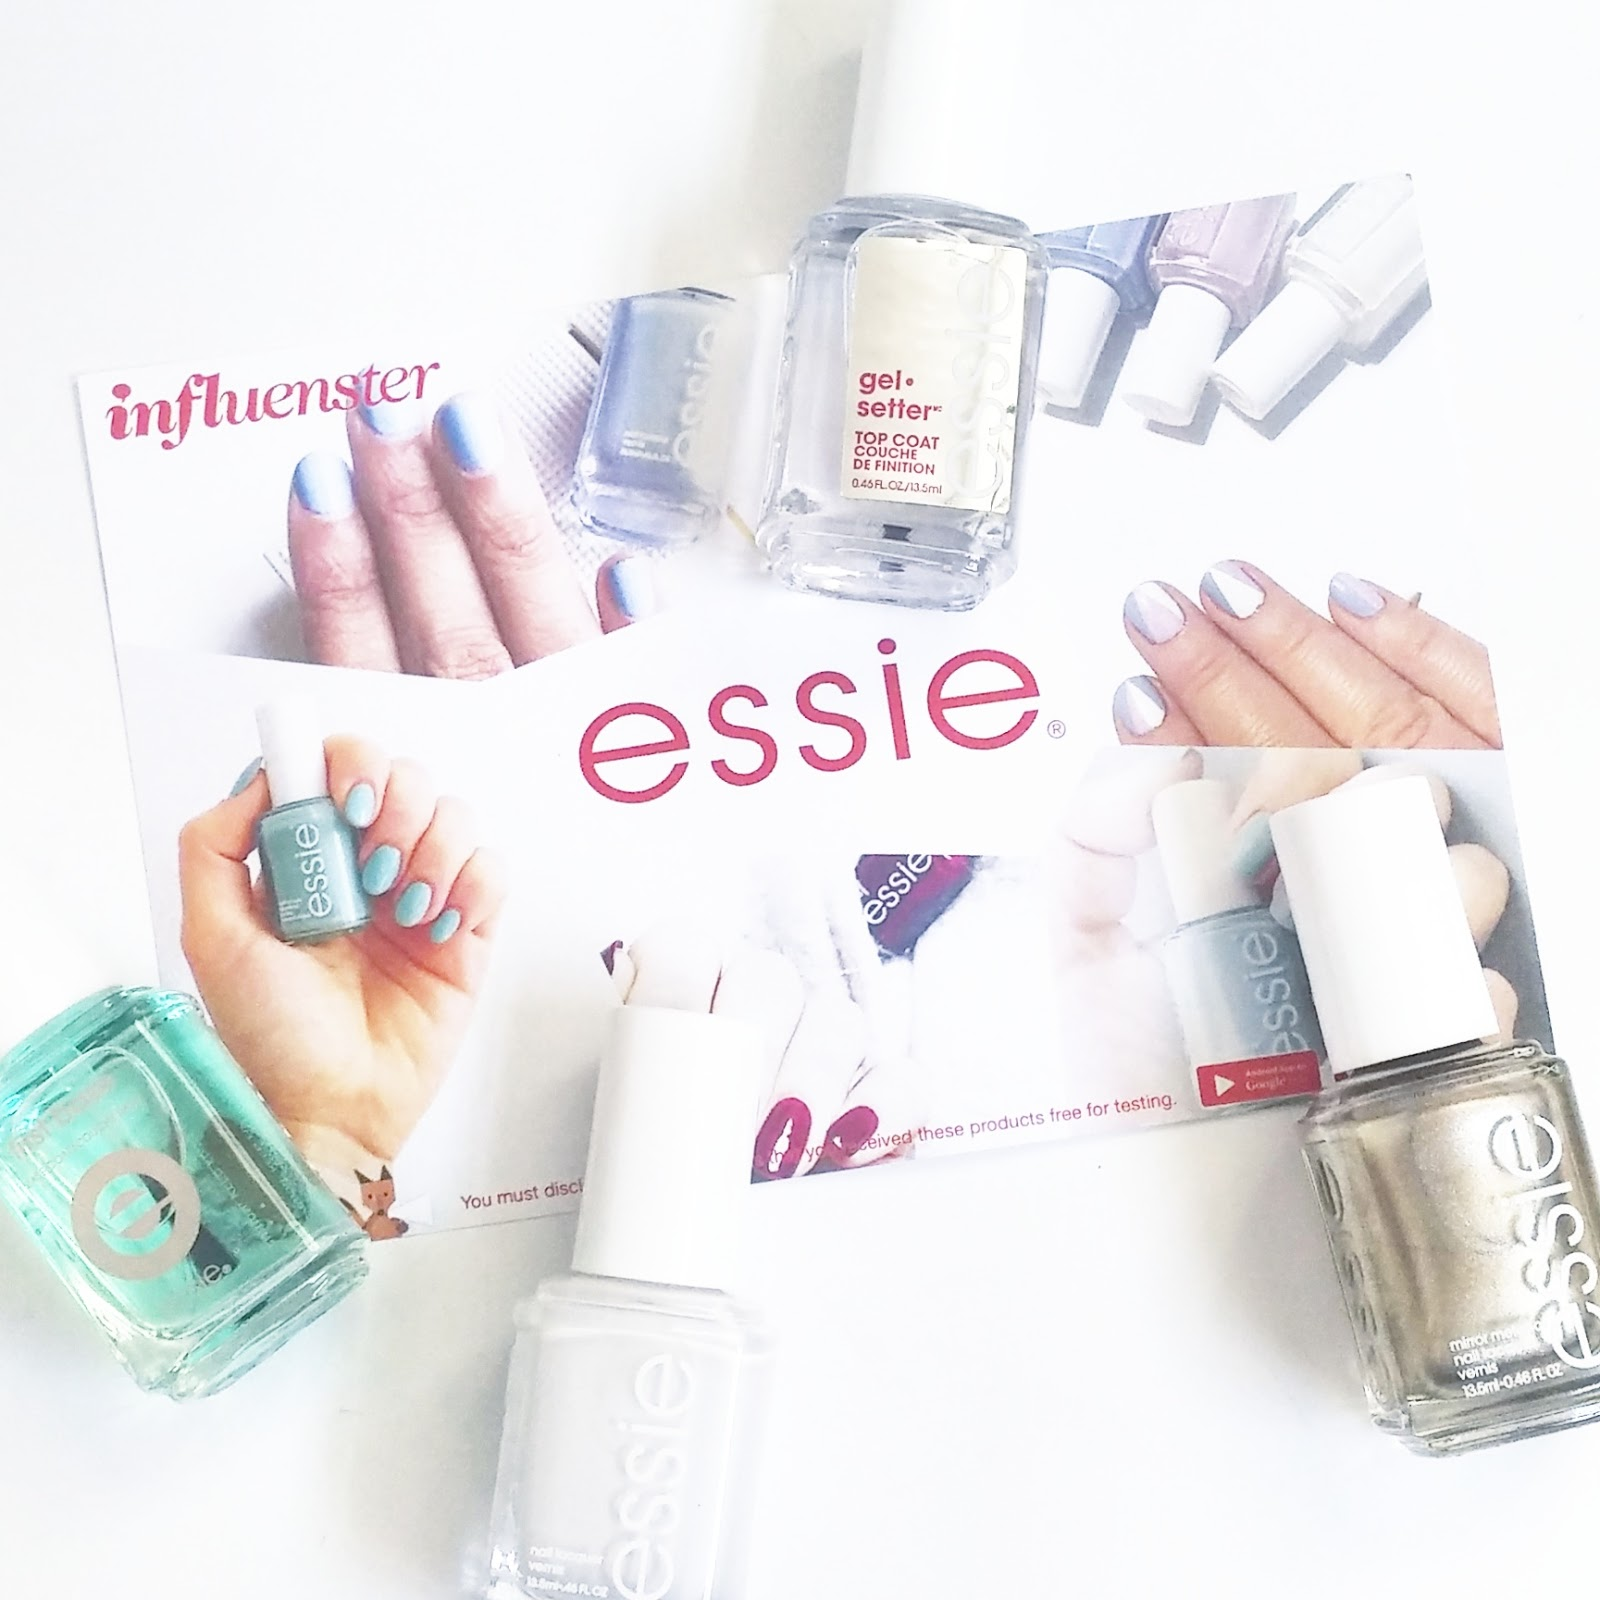 Essie VoxBox Review (first base, gel setter, blanc, good as gold)